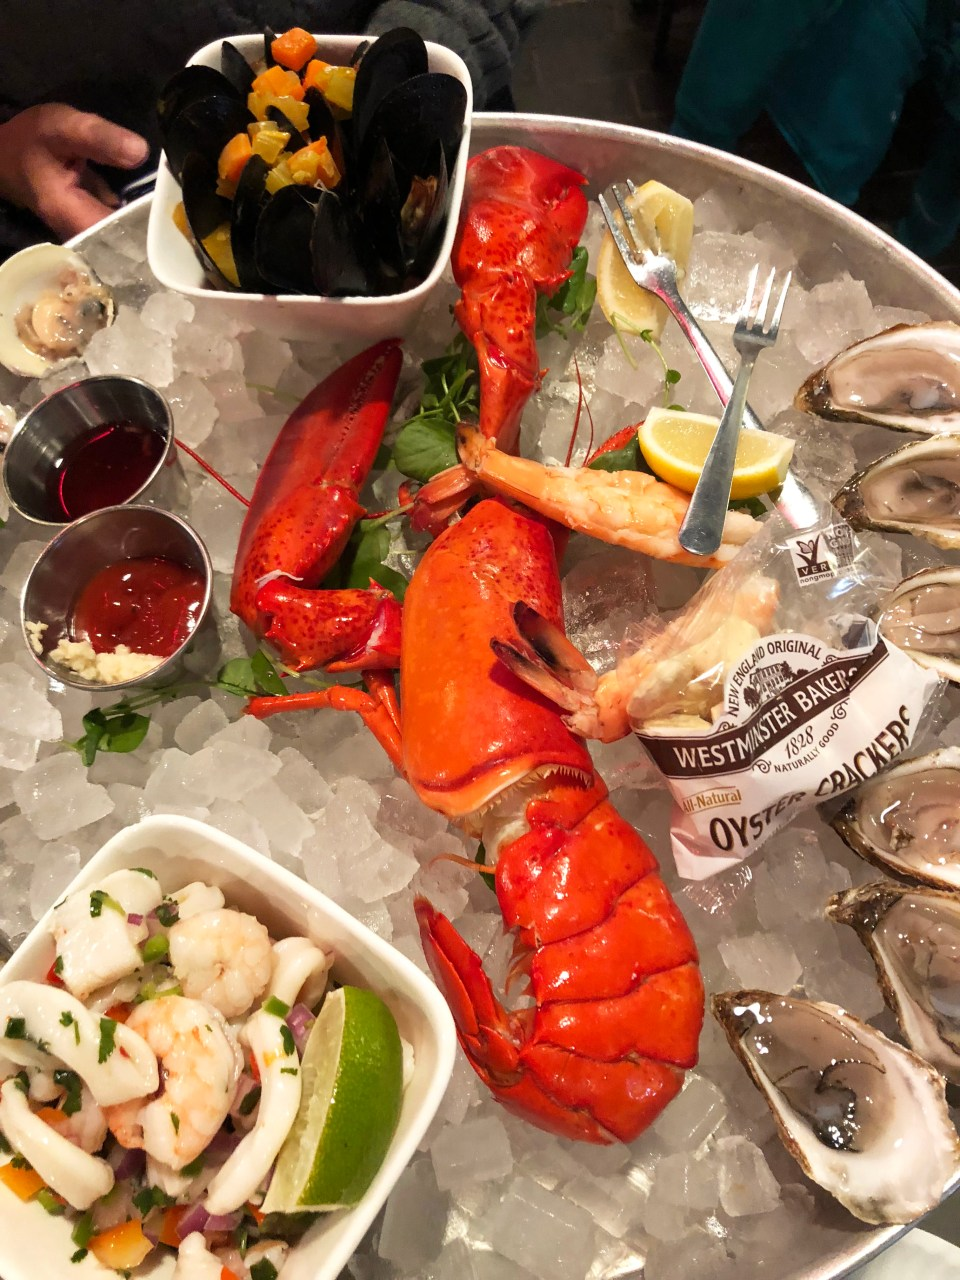 Hank's Oyster Bar - Seafood Plateau